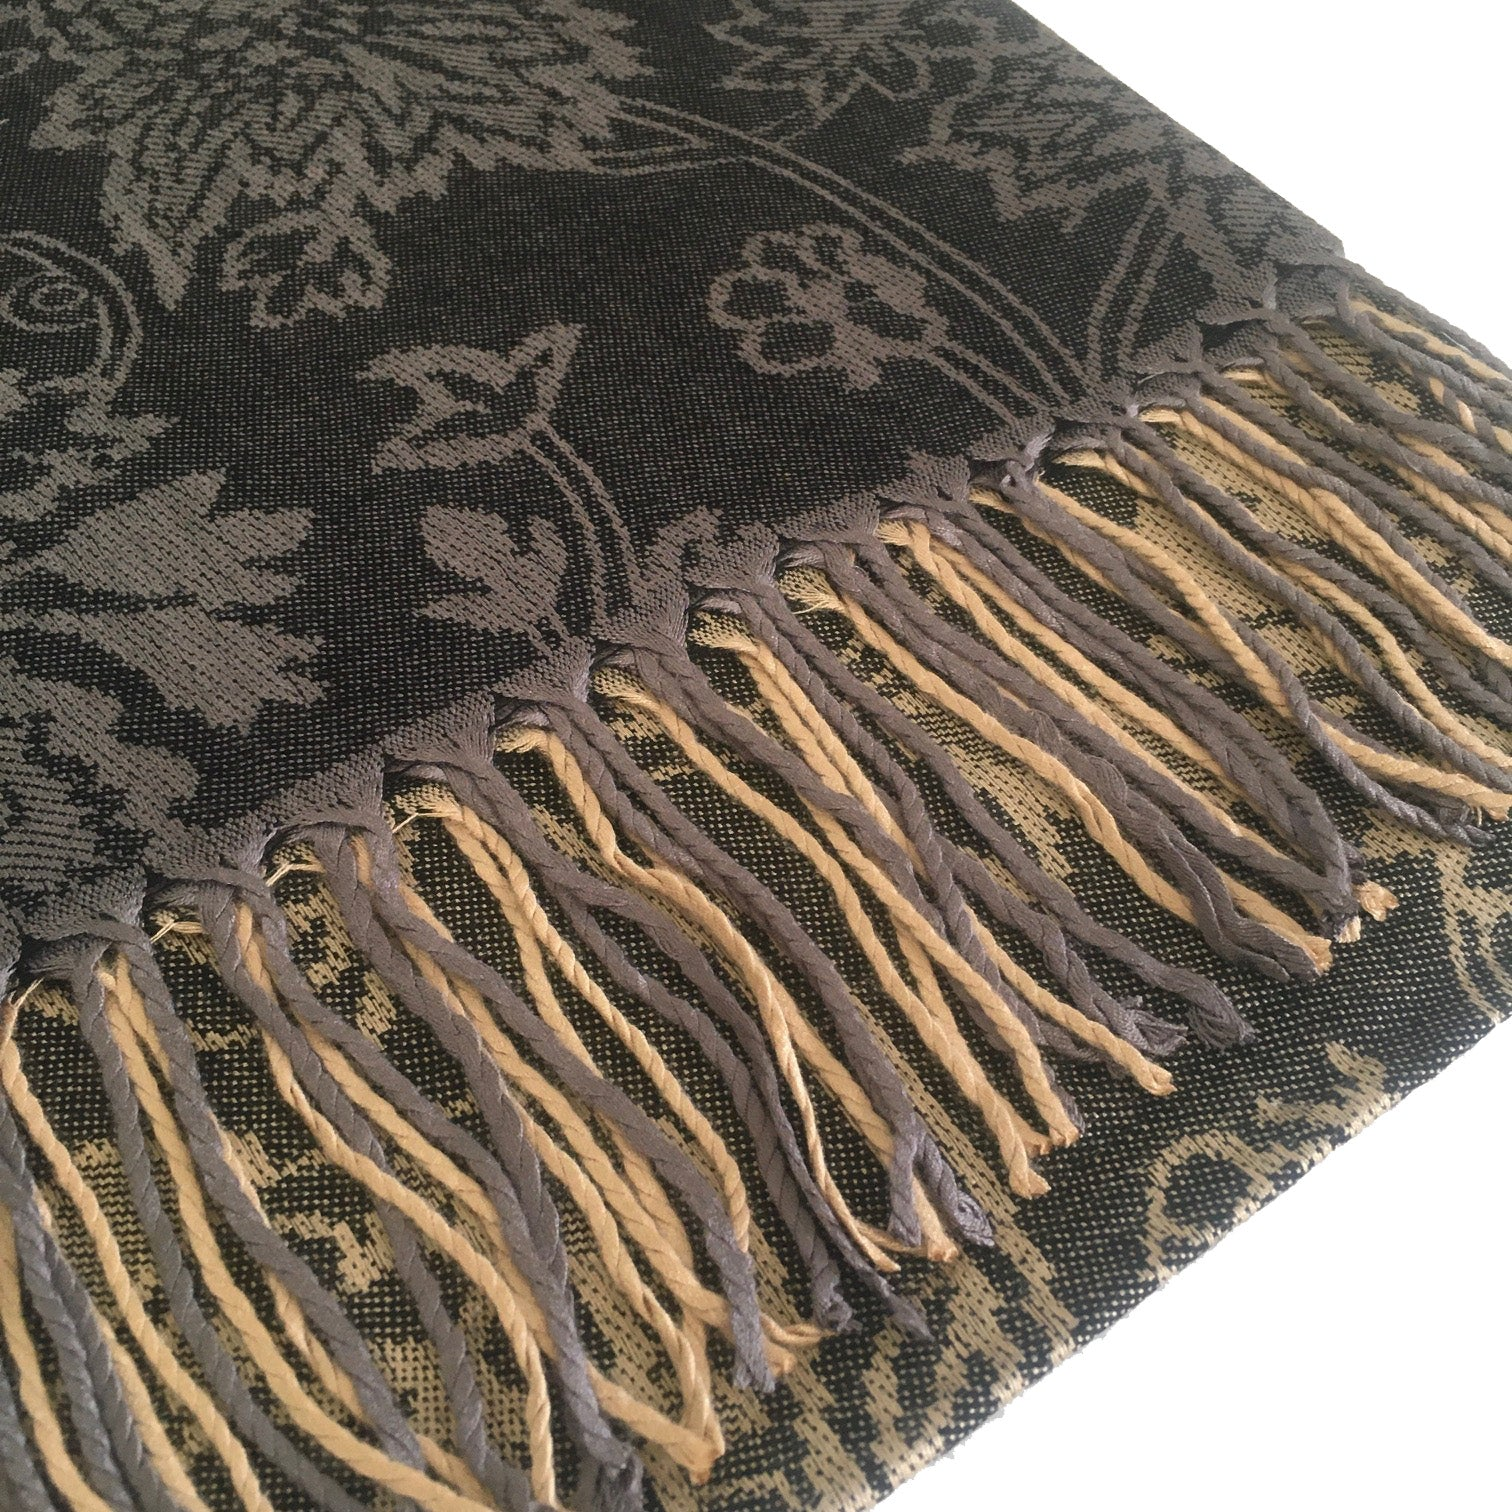 A-SHU DARK GREY PAISLEY FLORAL PRINT REVERSIBLE PASHMINA SHAWL SCARF - A-SHU.CO.UK